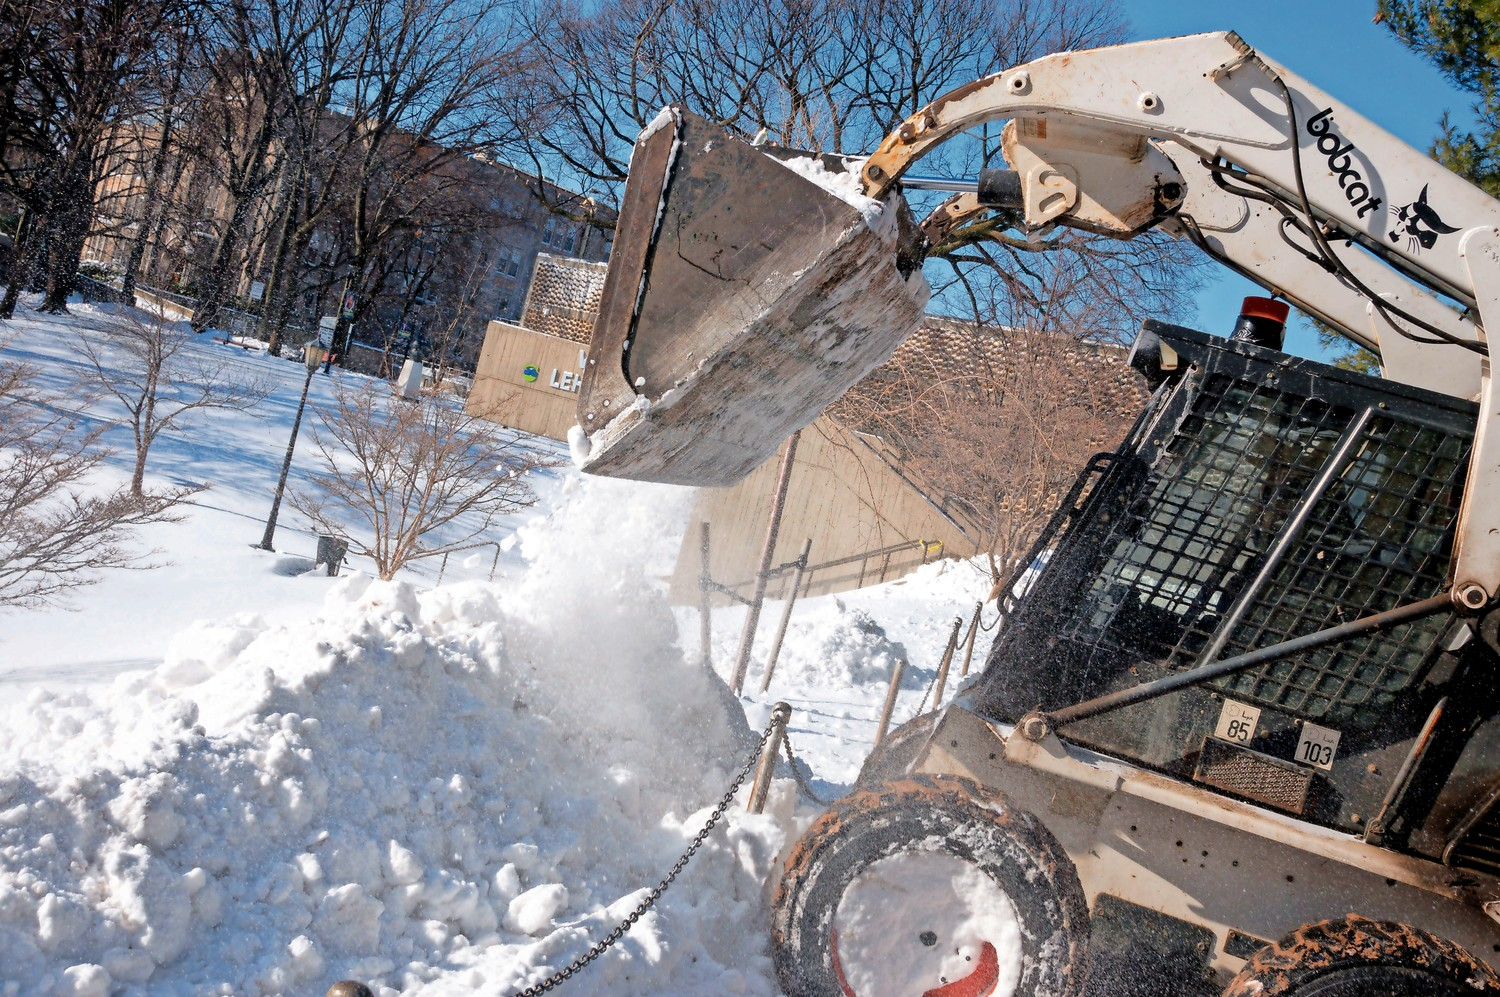 Dennis Mosman dumps snow on a hill at Lehman College. The buildings and grounds staff at Lehman College put in extra hours to clear the snow in the aftermath of the bomb cyclone.